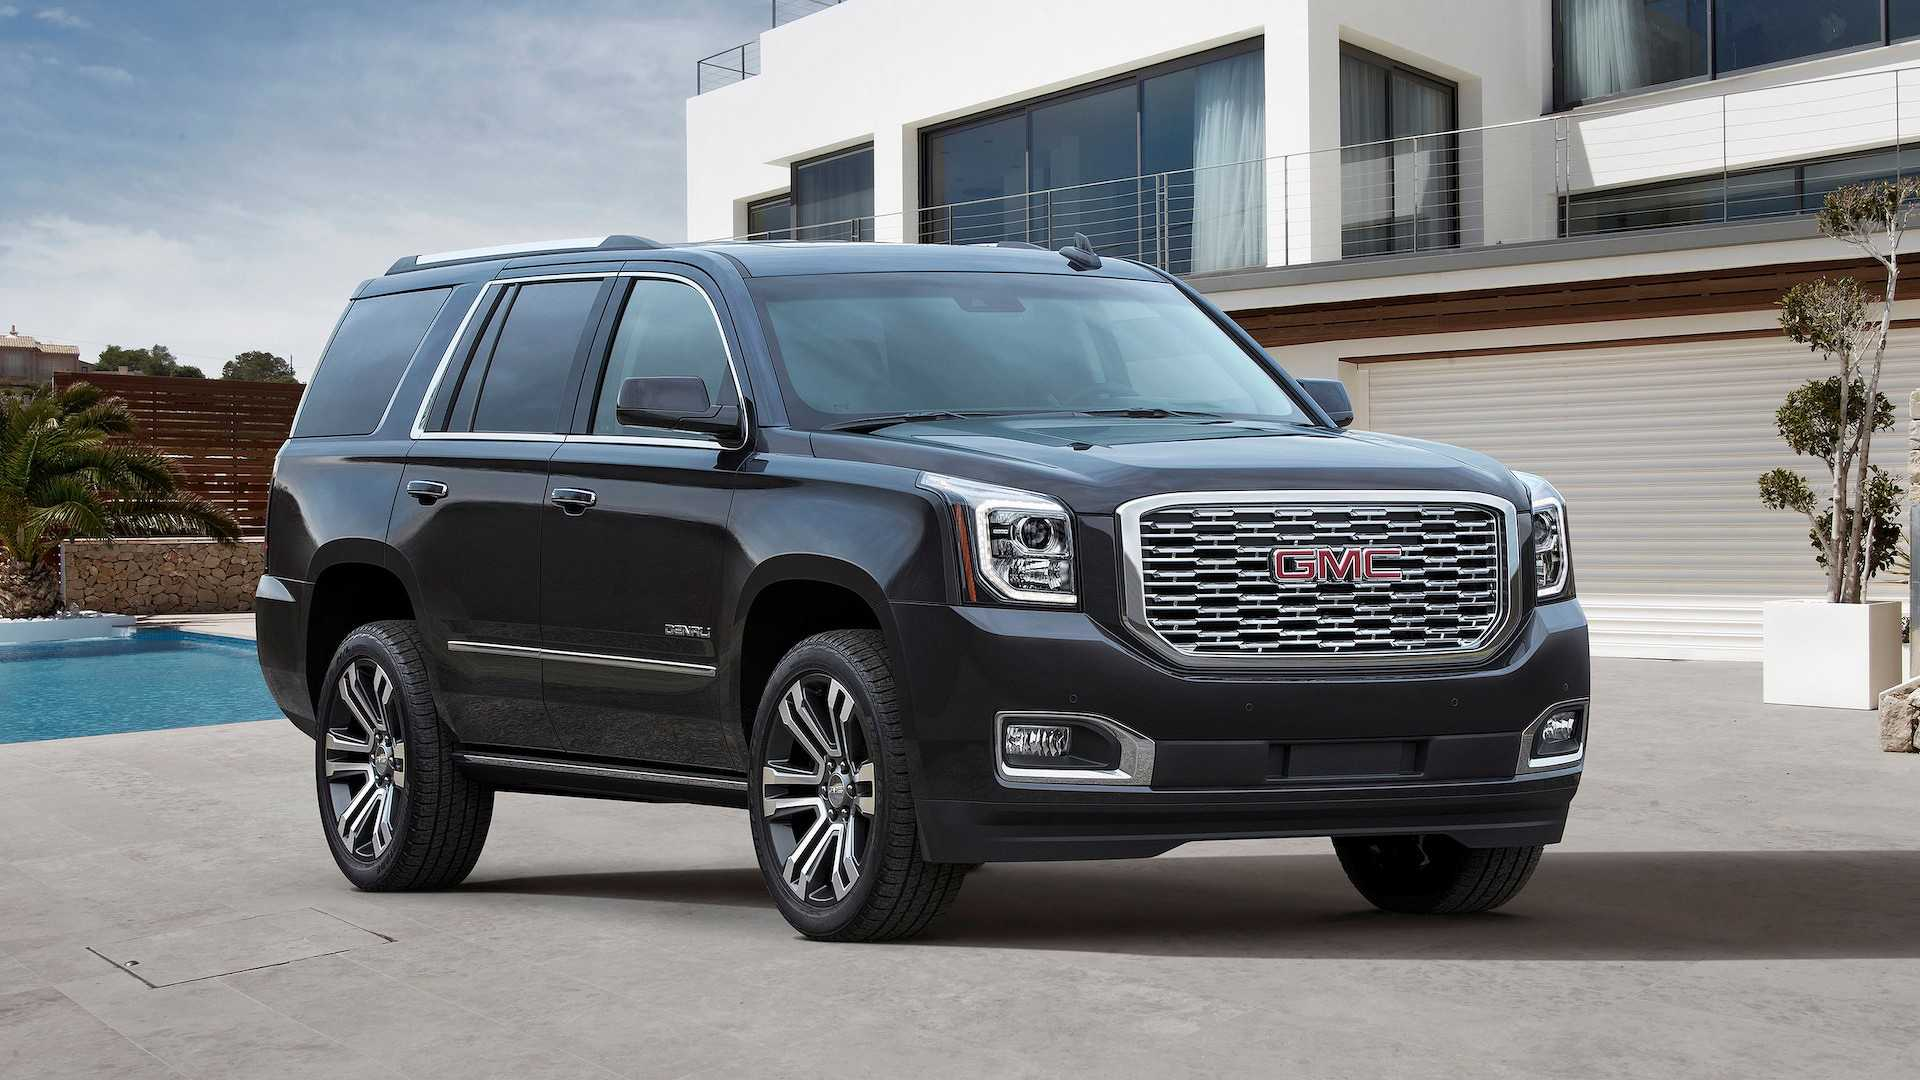 2018 chevrolet tahoe vs 2018 gmc yukon compare reviews. Black Bedroom Furniture Sets. Home Design Ideas